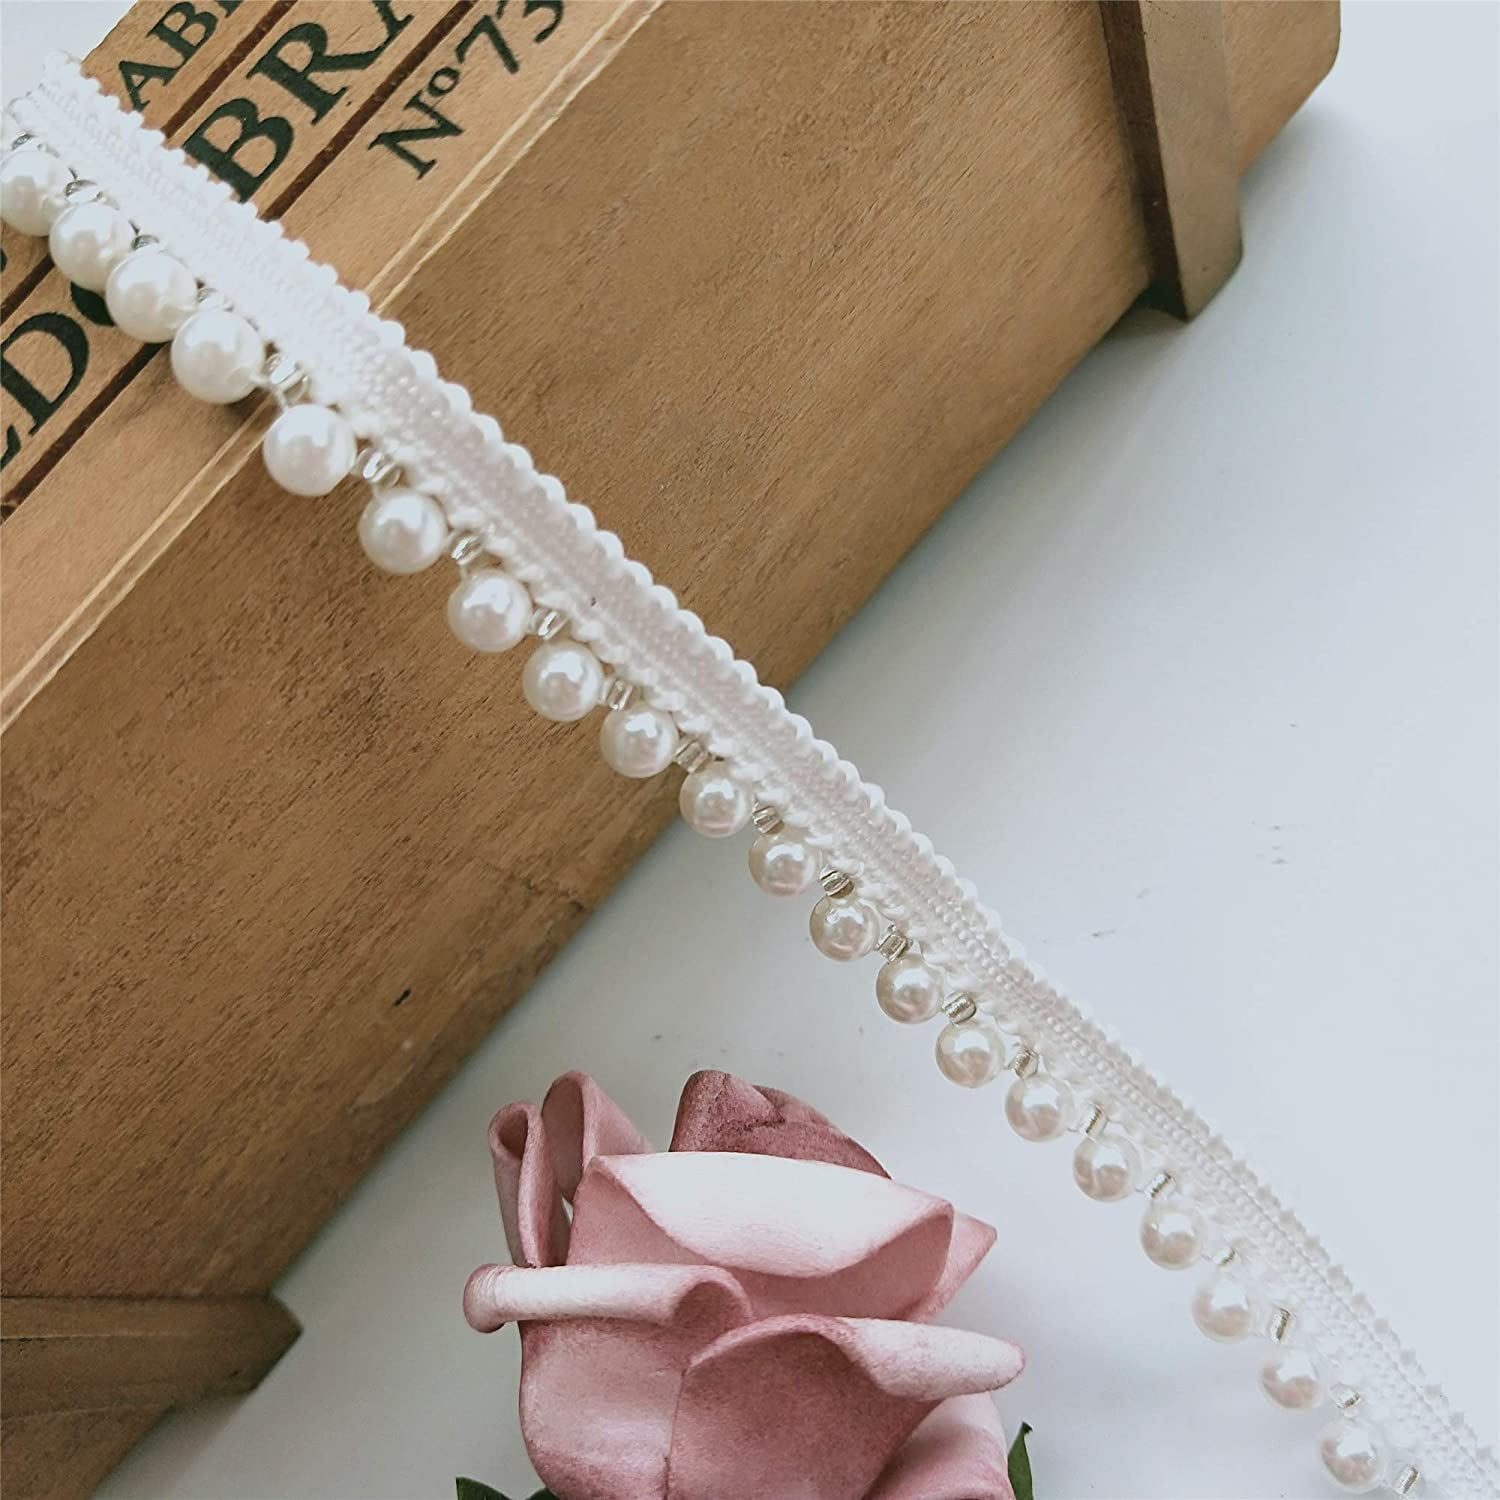 1 Metre Pearl Lace Trim Ribbon with Beads Edge Fabric Tape 1.3cm Wide Vintage Style White Edging Trimmings Fabric Embroidered Applique Sewing Craft Wedding Bridal Dress Embellishment DIY Decoration Clothes Embroidery Qiuda